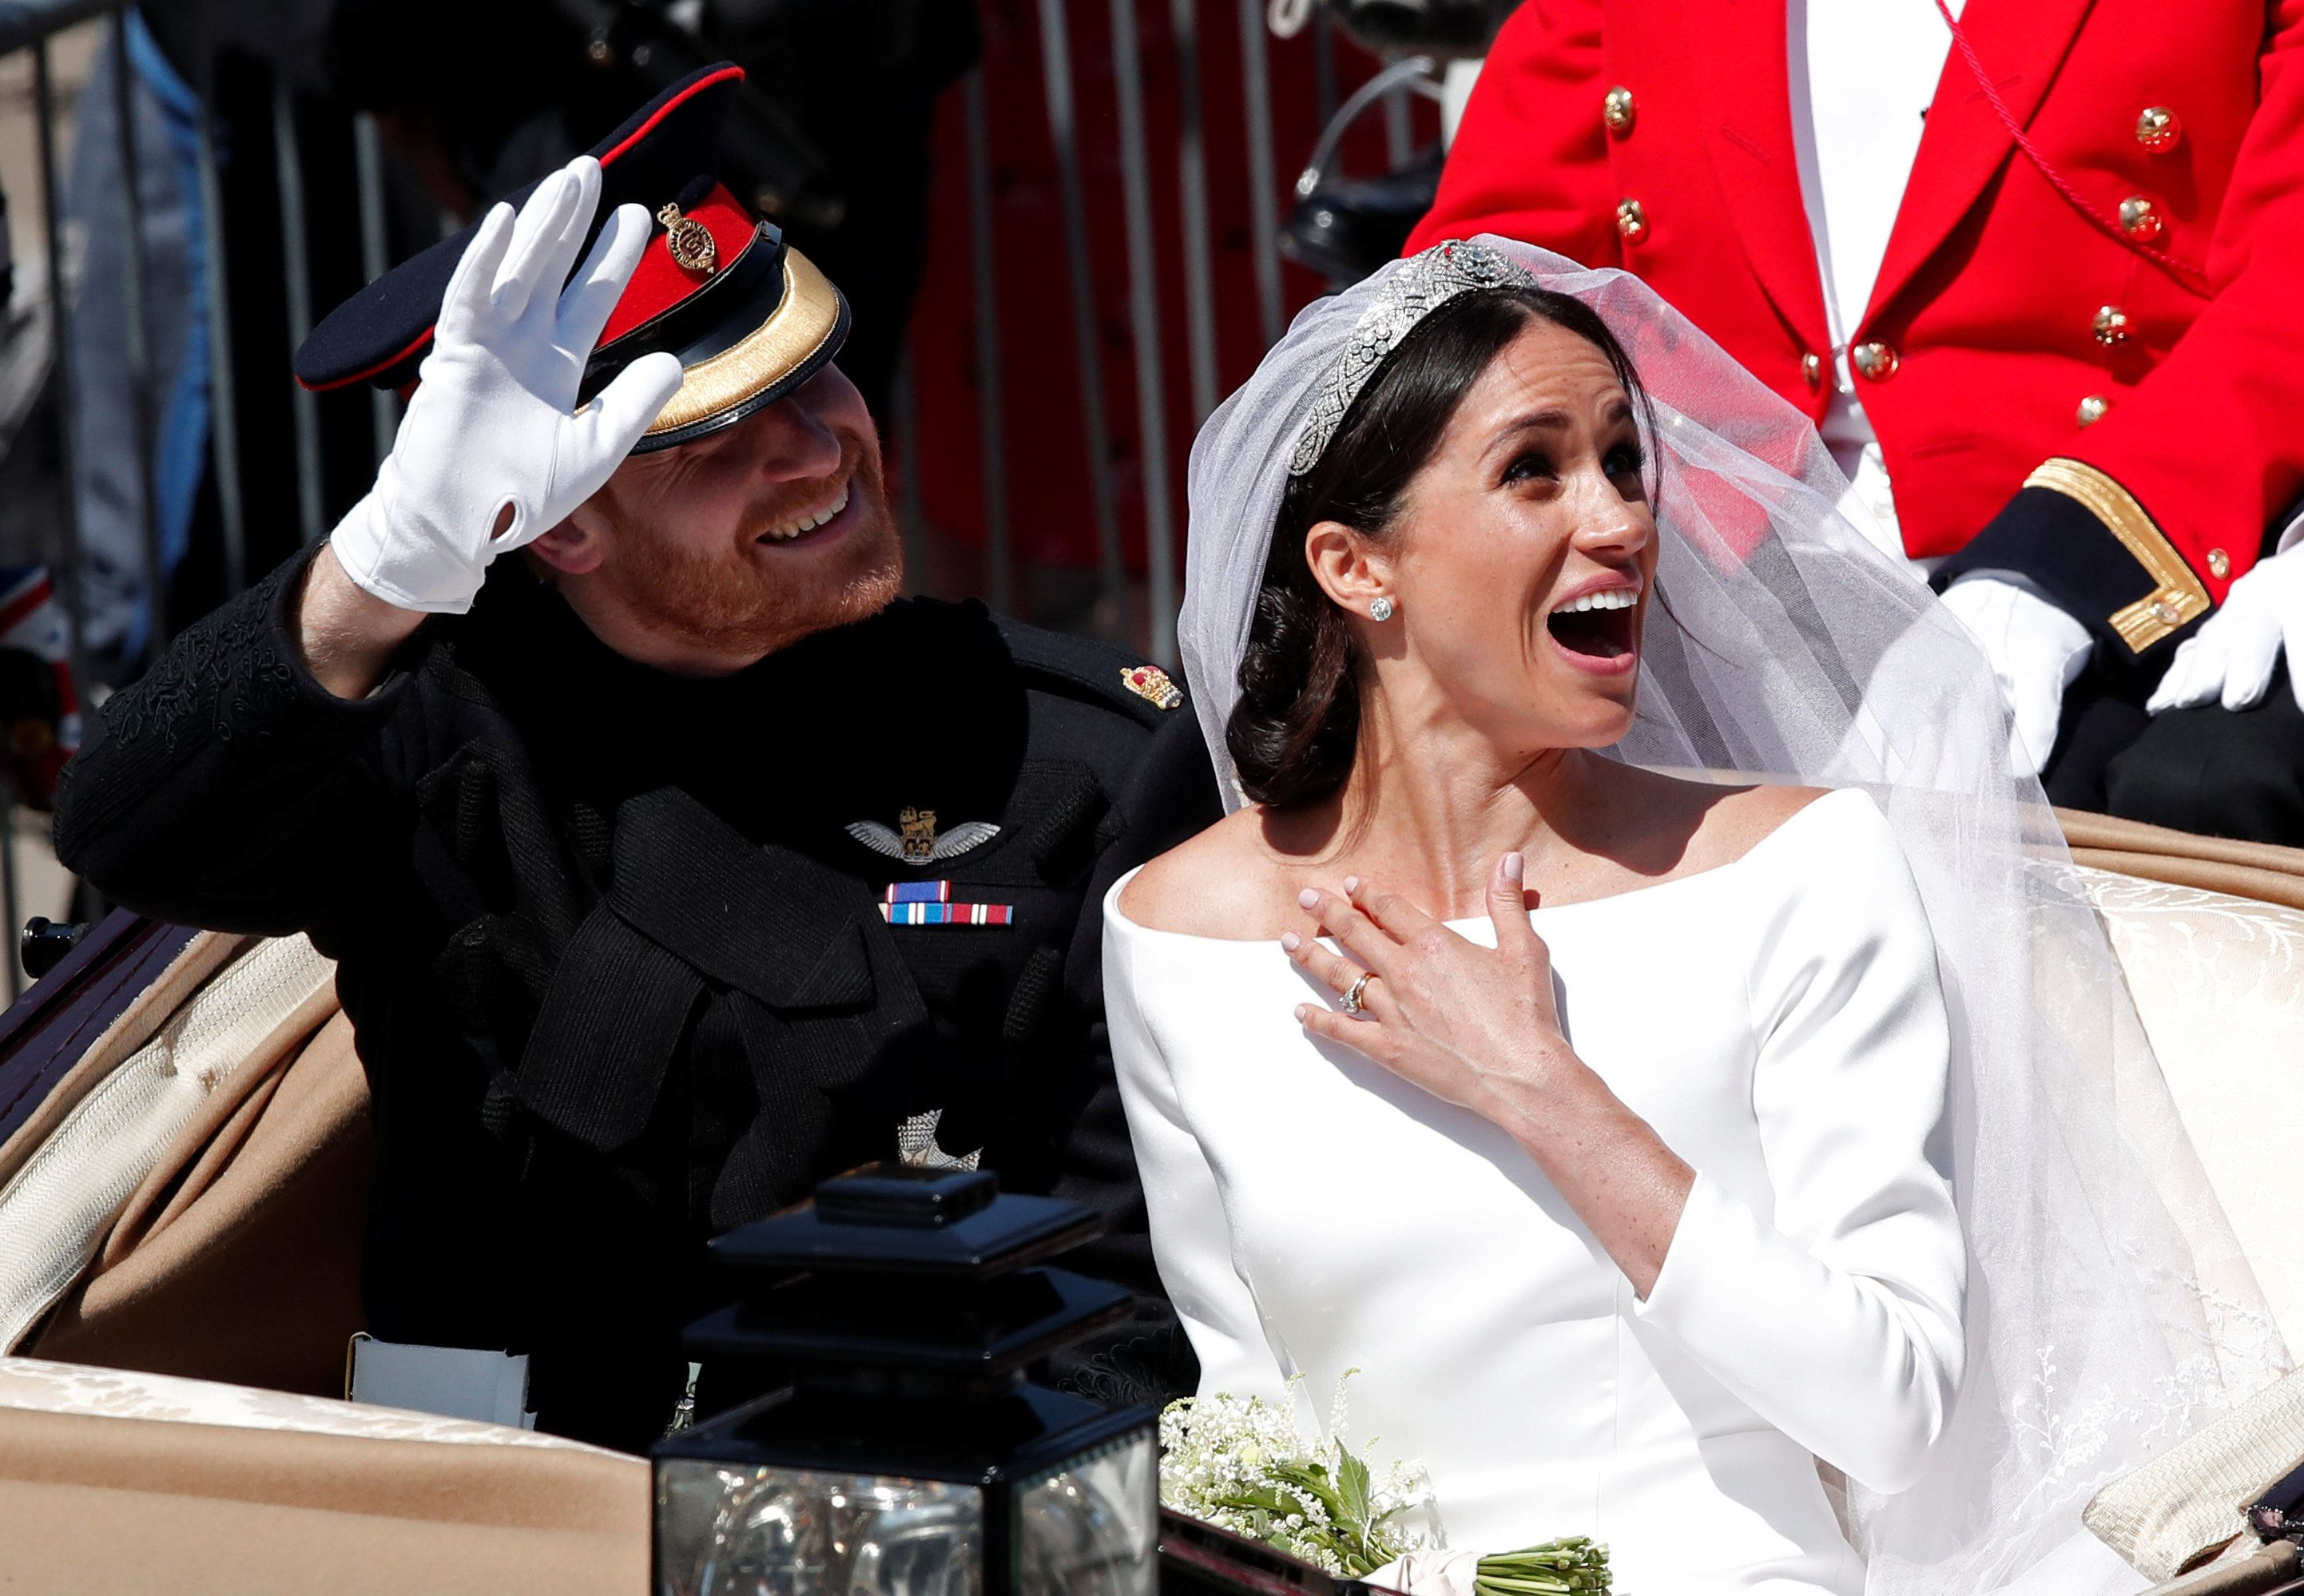 Britain?s Prince Harry and his wife Meghan ride a horse-drawn carriage after their wedding ceremony at St George?s Chapel in Windsor Castle in Windsor, Britain, May 19, 2018. REUTERS/Benoit Tessier TPX IMAGES OF THE DAY